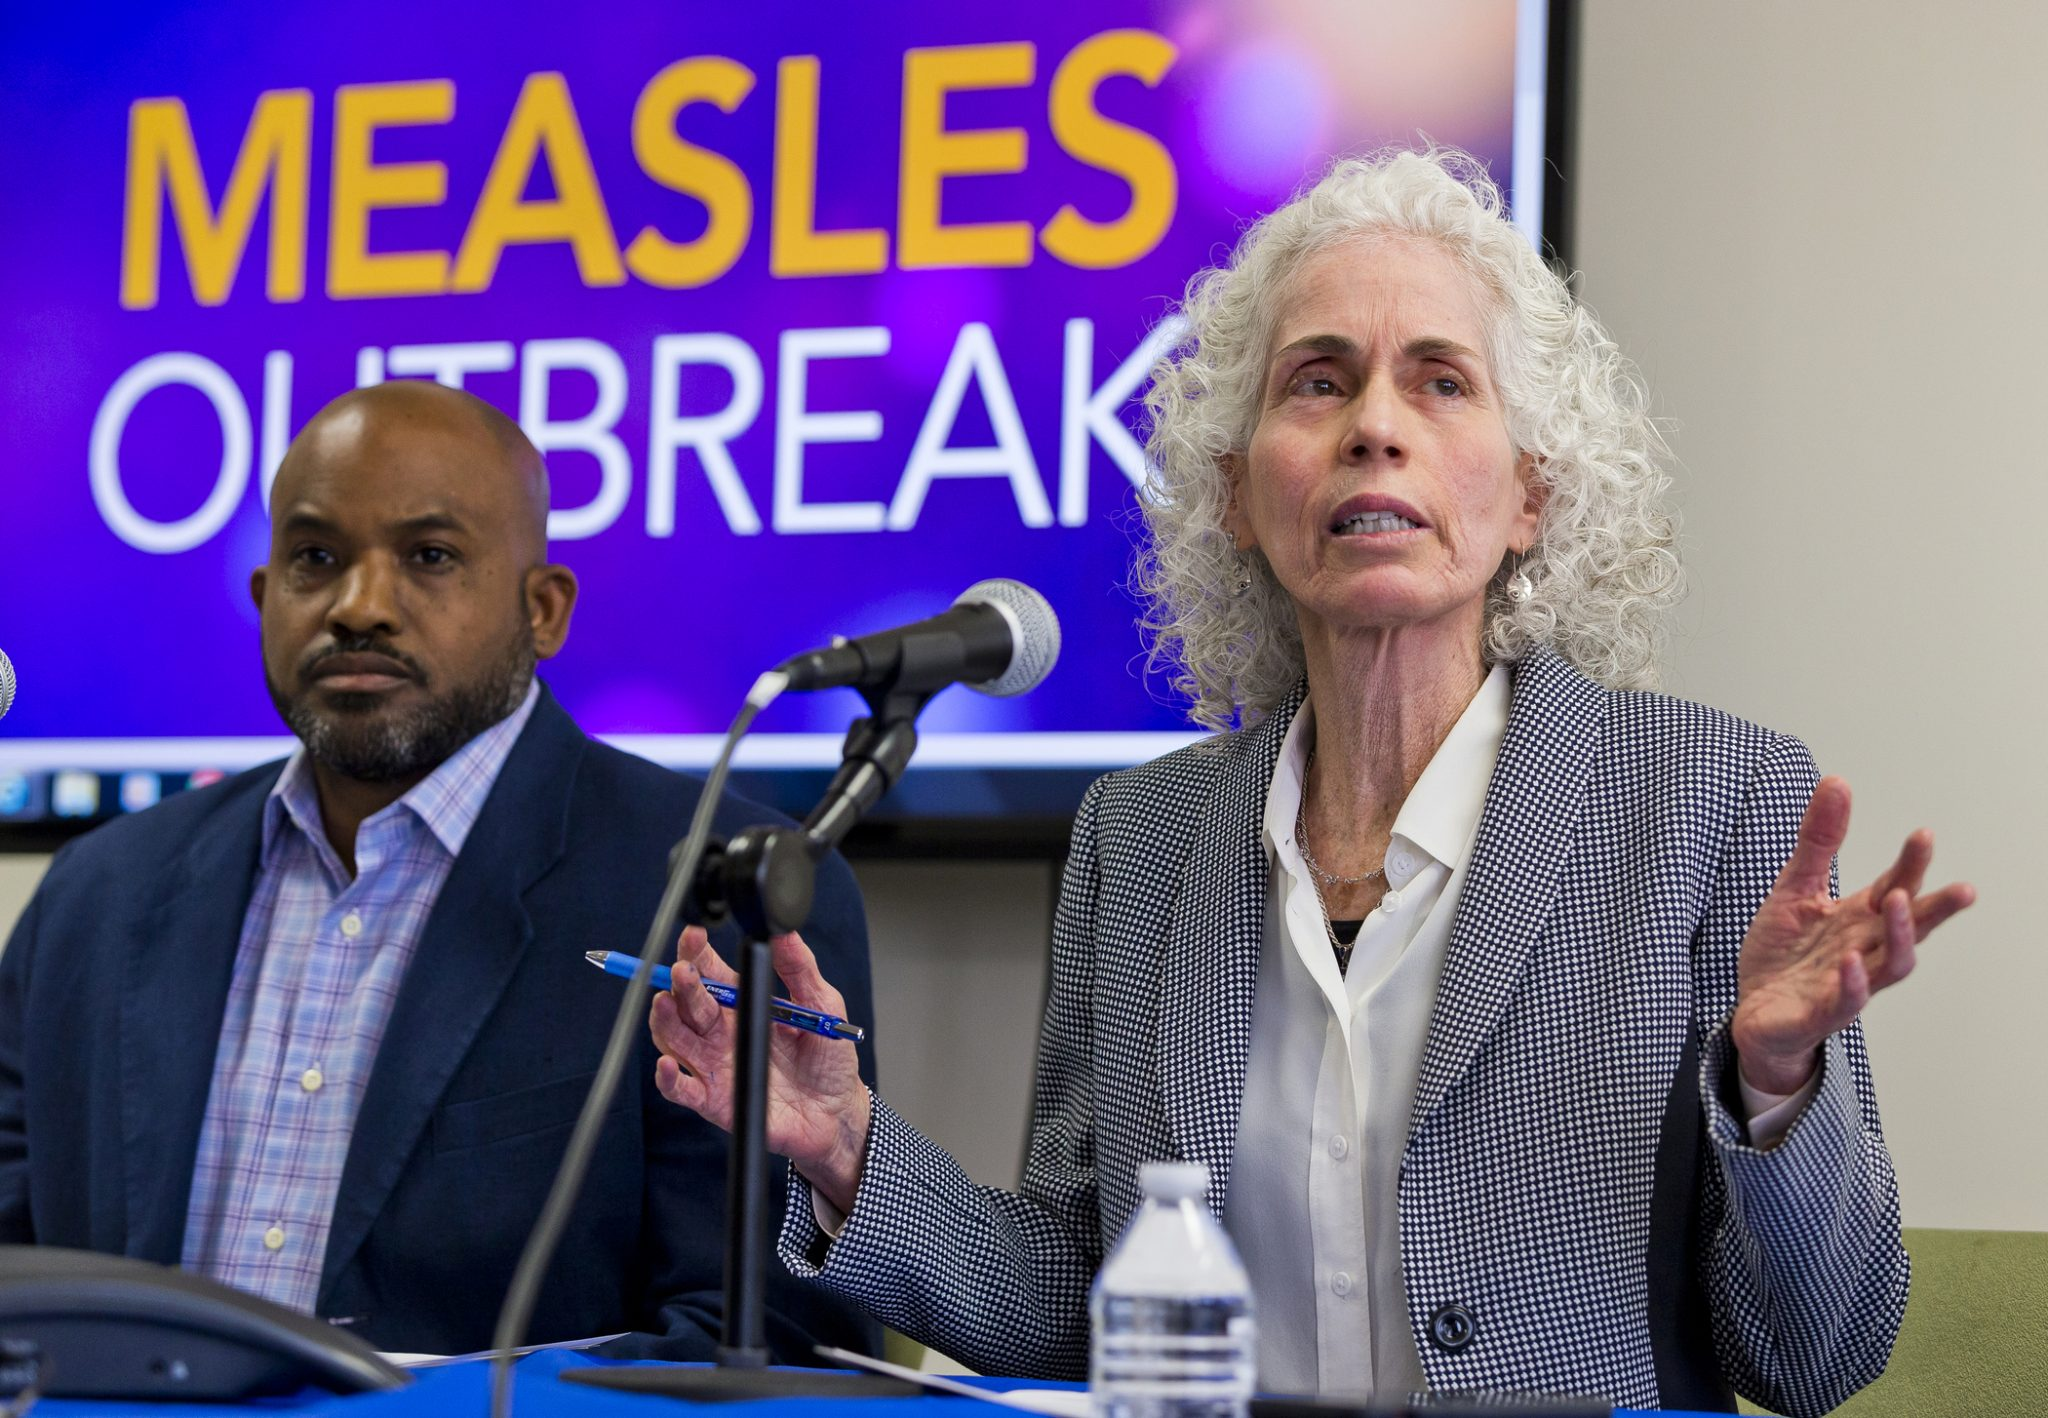 Over 1,000 quarantined in measles scare at LA universities